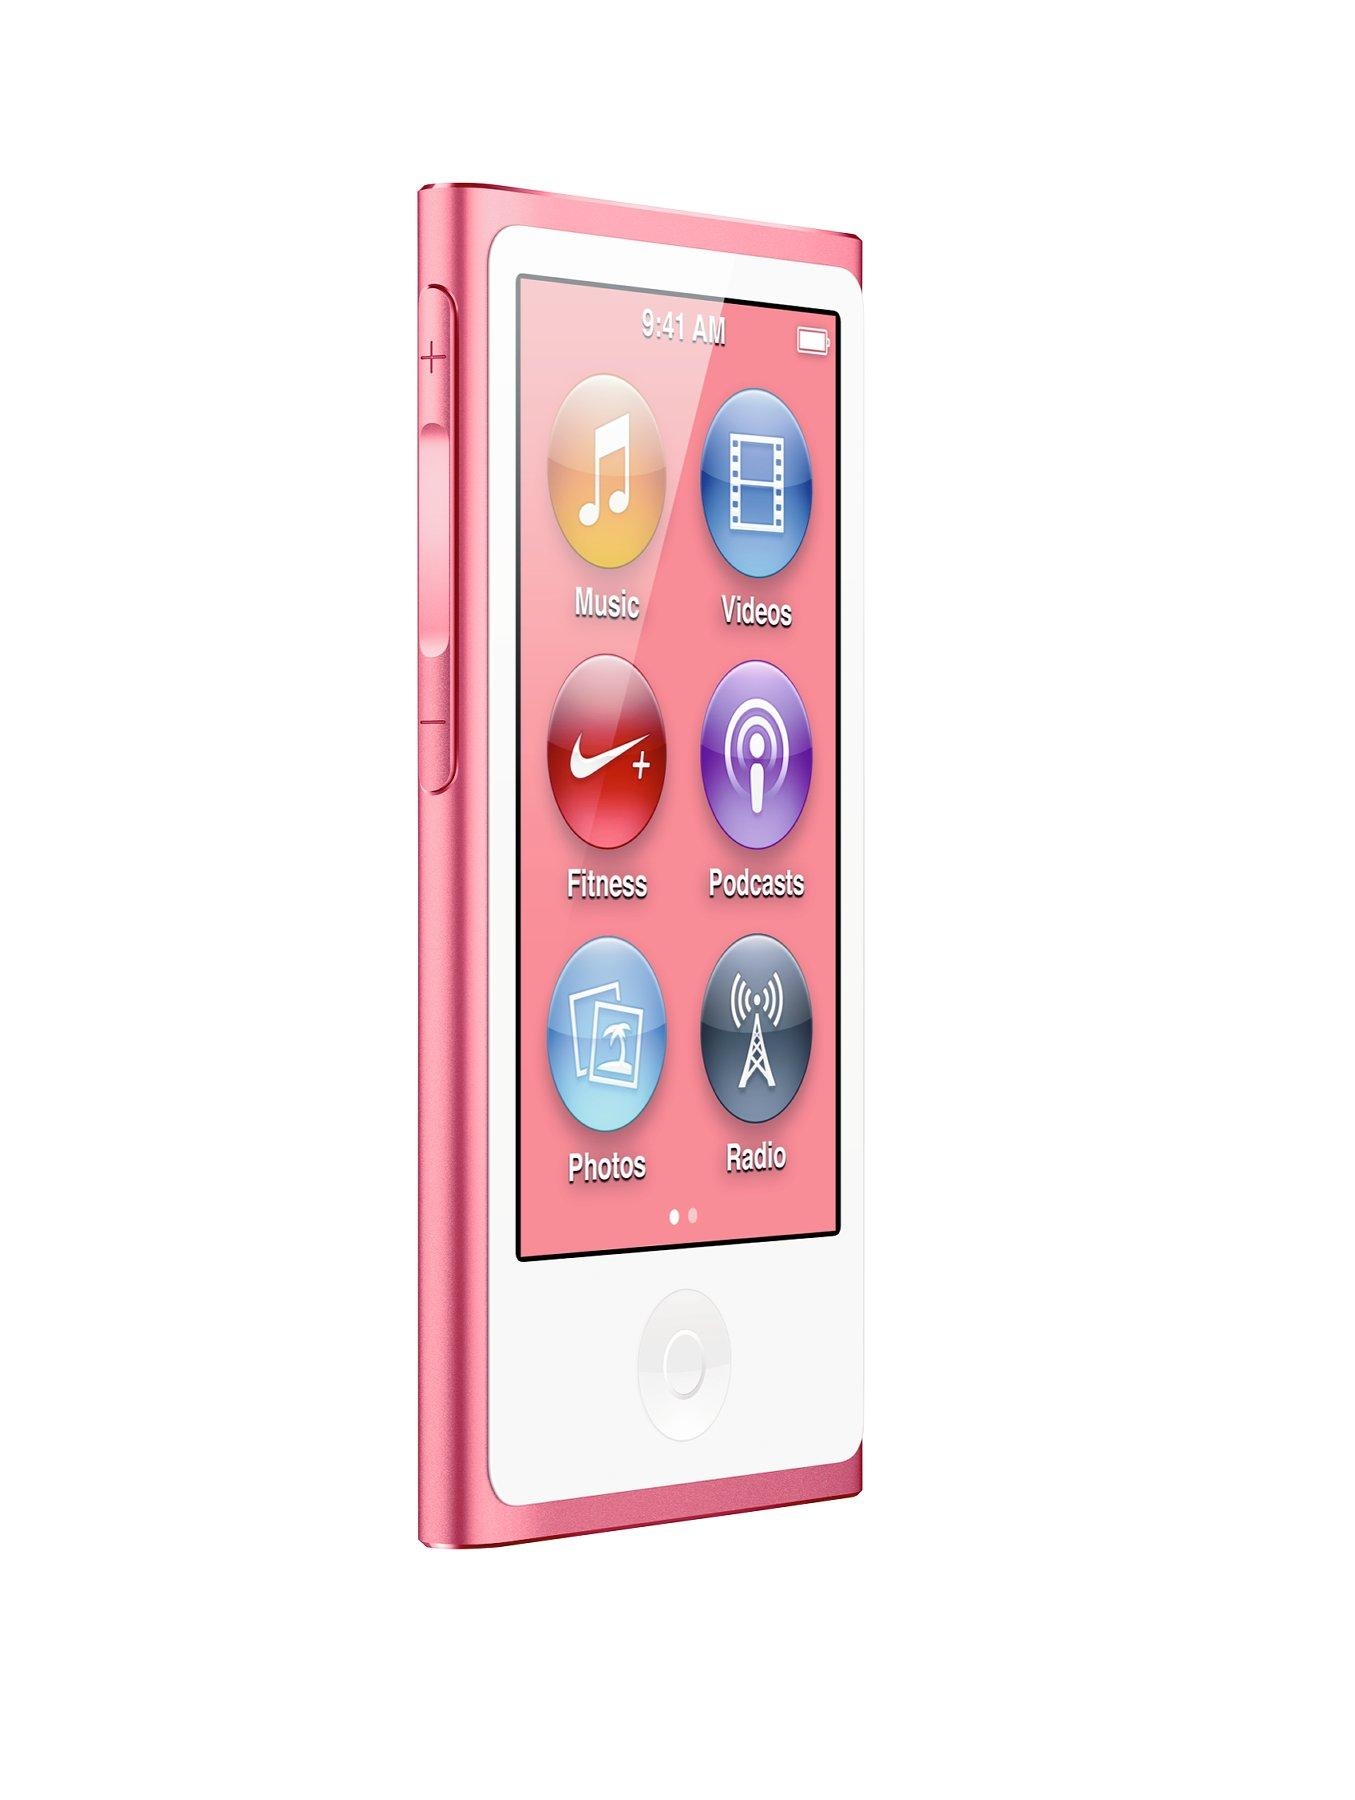 IPod nano 16Gb - Pink at Littlewoods